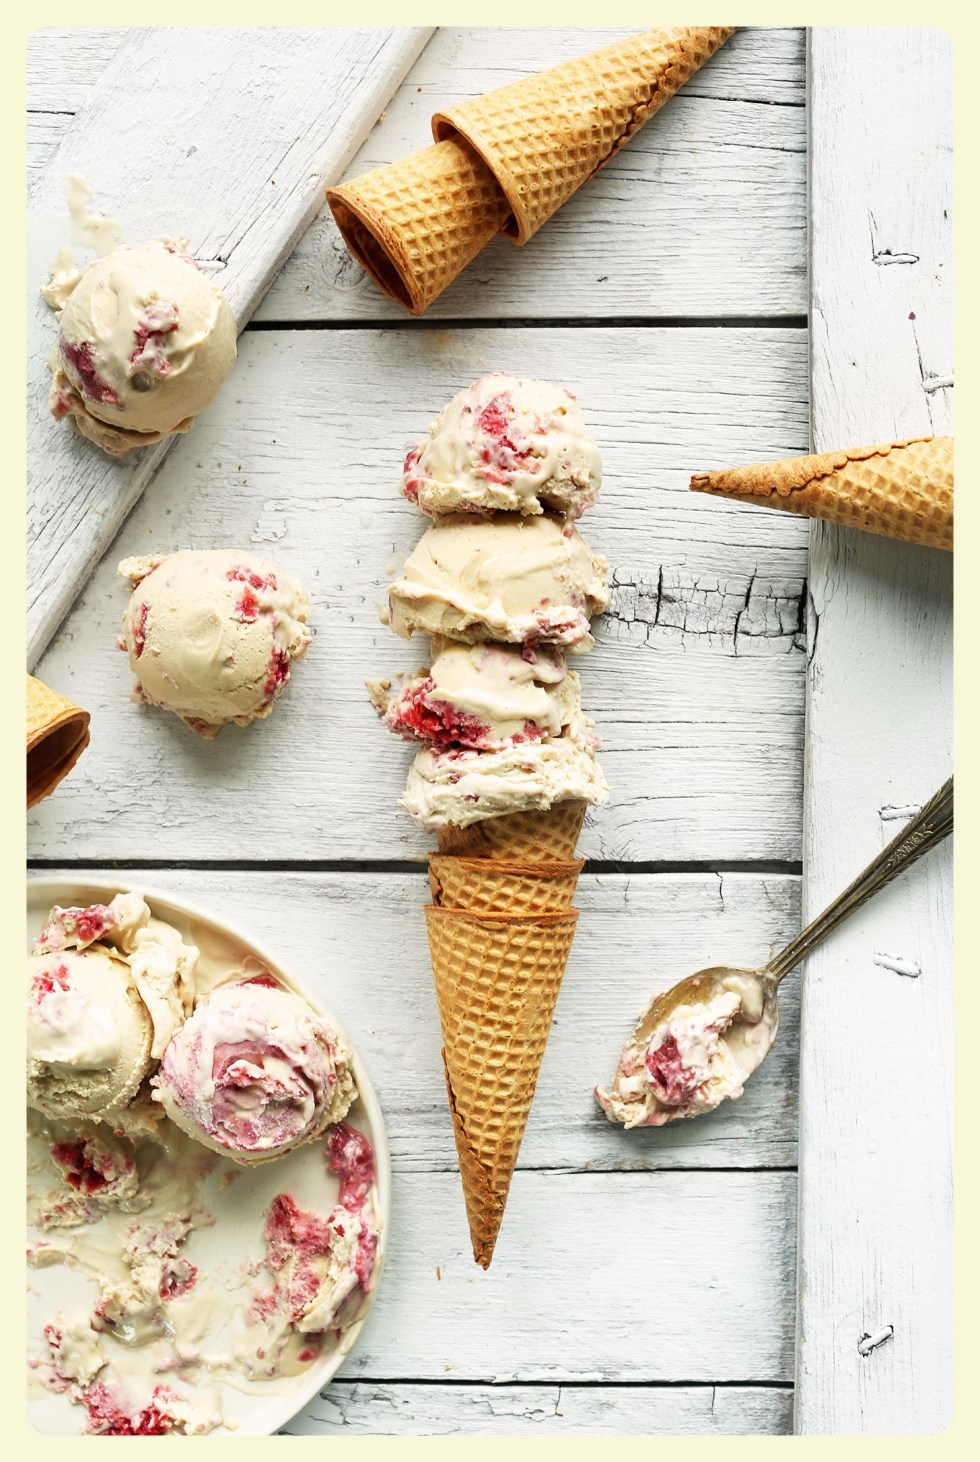 Raspberry & coconut homemade ice cream. Featured by Special Learning House. Recipes on the blog. www.speciallearninghouse.com